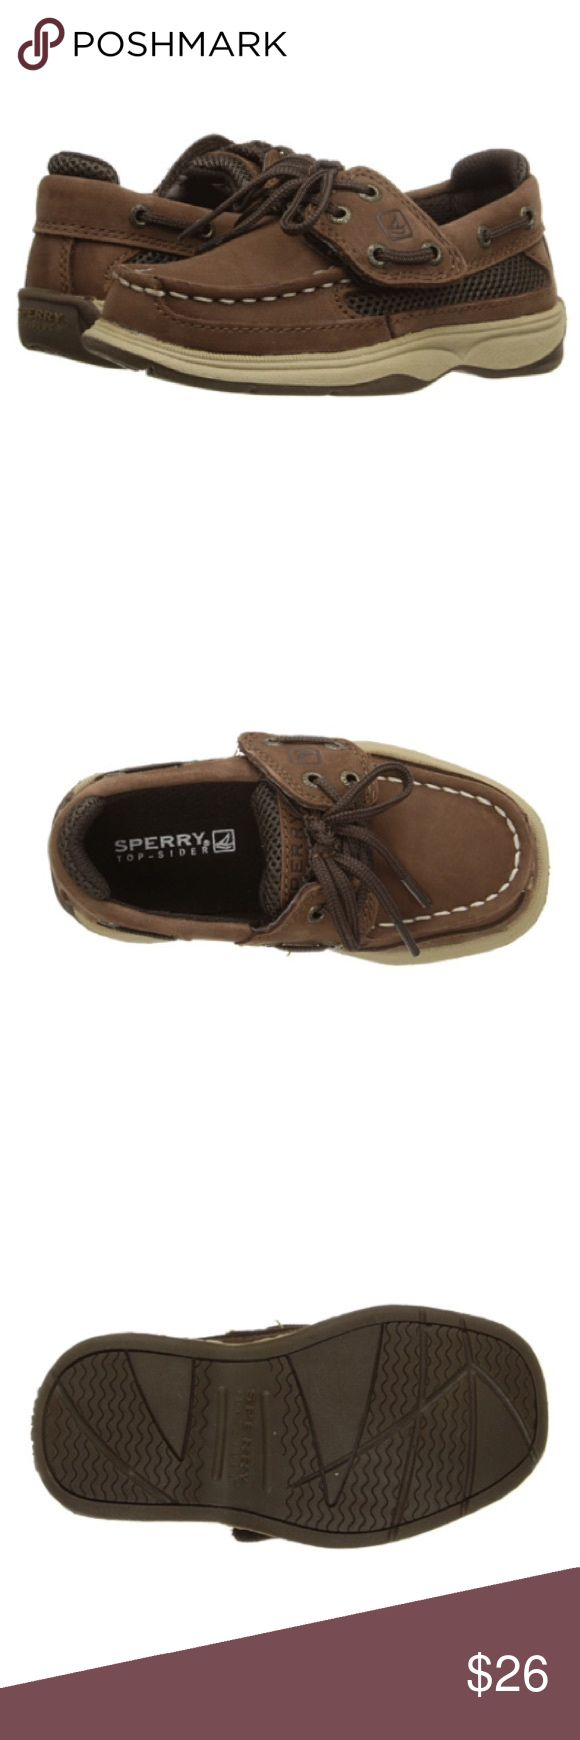 Boys Sperry Top-Sider Lanyard Boat Shoes Durable leather in cigar brown with vented mesh side panels. Molded foot bed with heel cup for support. This will have delayed shipping of 2-3 days of ordered now. I will have original photos posted soon and I can tag anyone interested when they are put up. Sperry Top-Sider Shoes